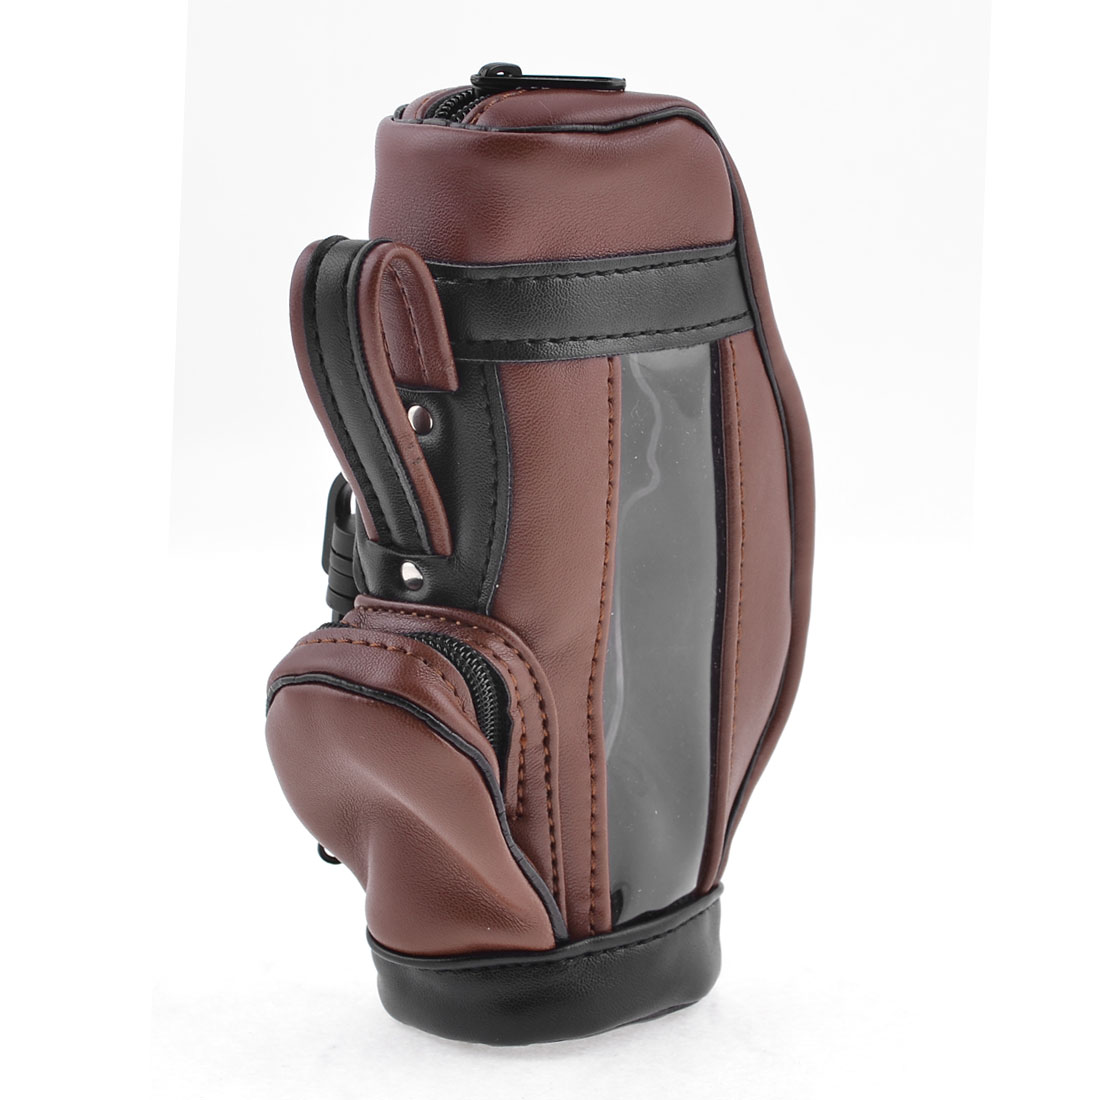 Plastic Zipped Faux Leather Golf Bag Organizer Case Dark Brown Black